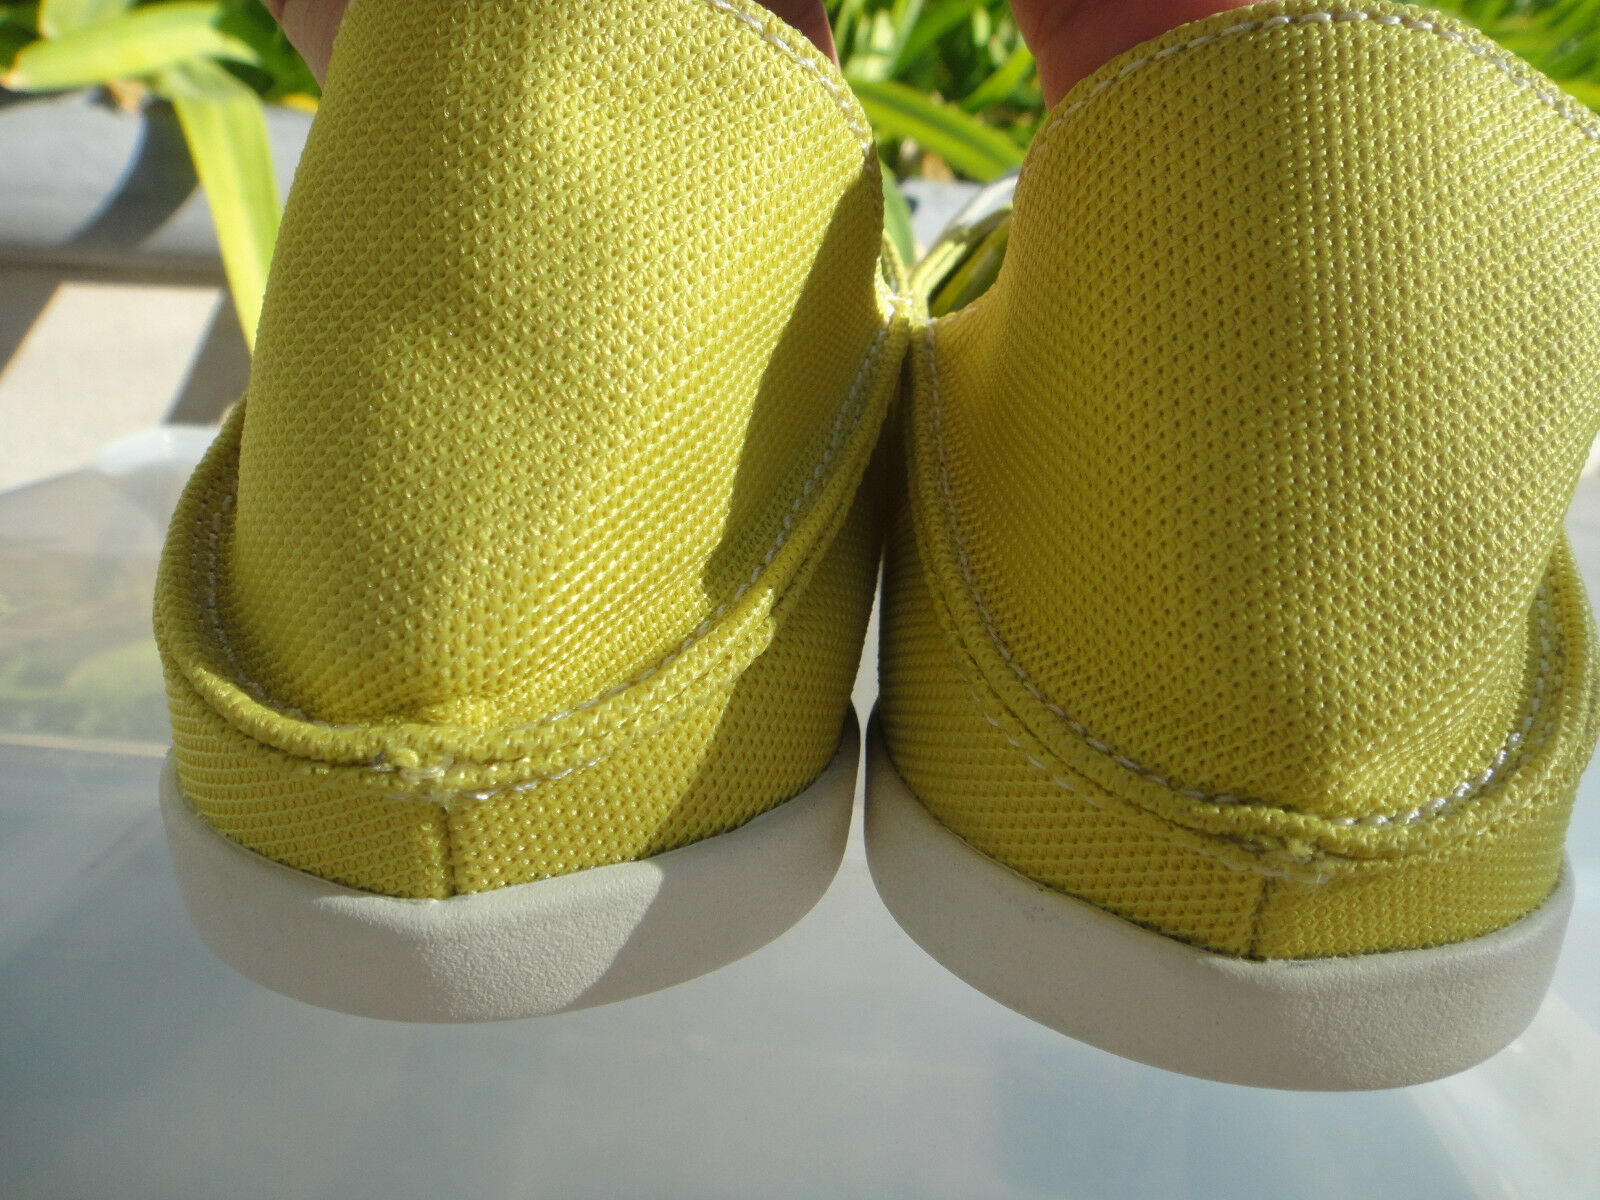 OluKai HELEUMA Mesh Citron Lace Up chaussures, Drop in in in Heel,  femmes US Taille 7 c318ac